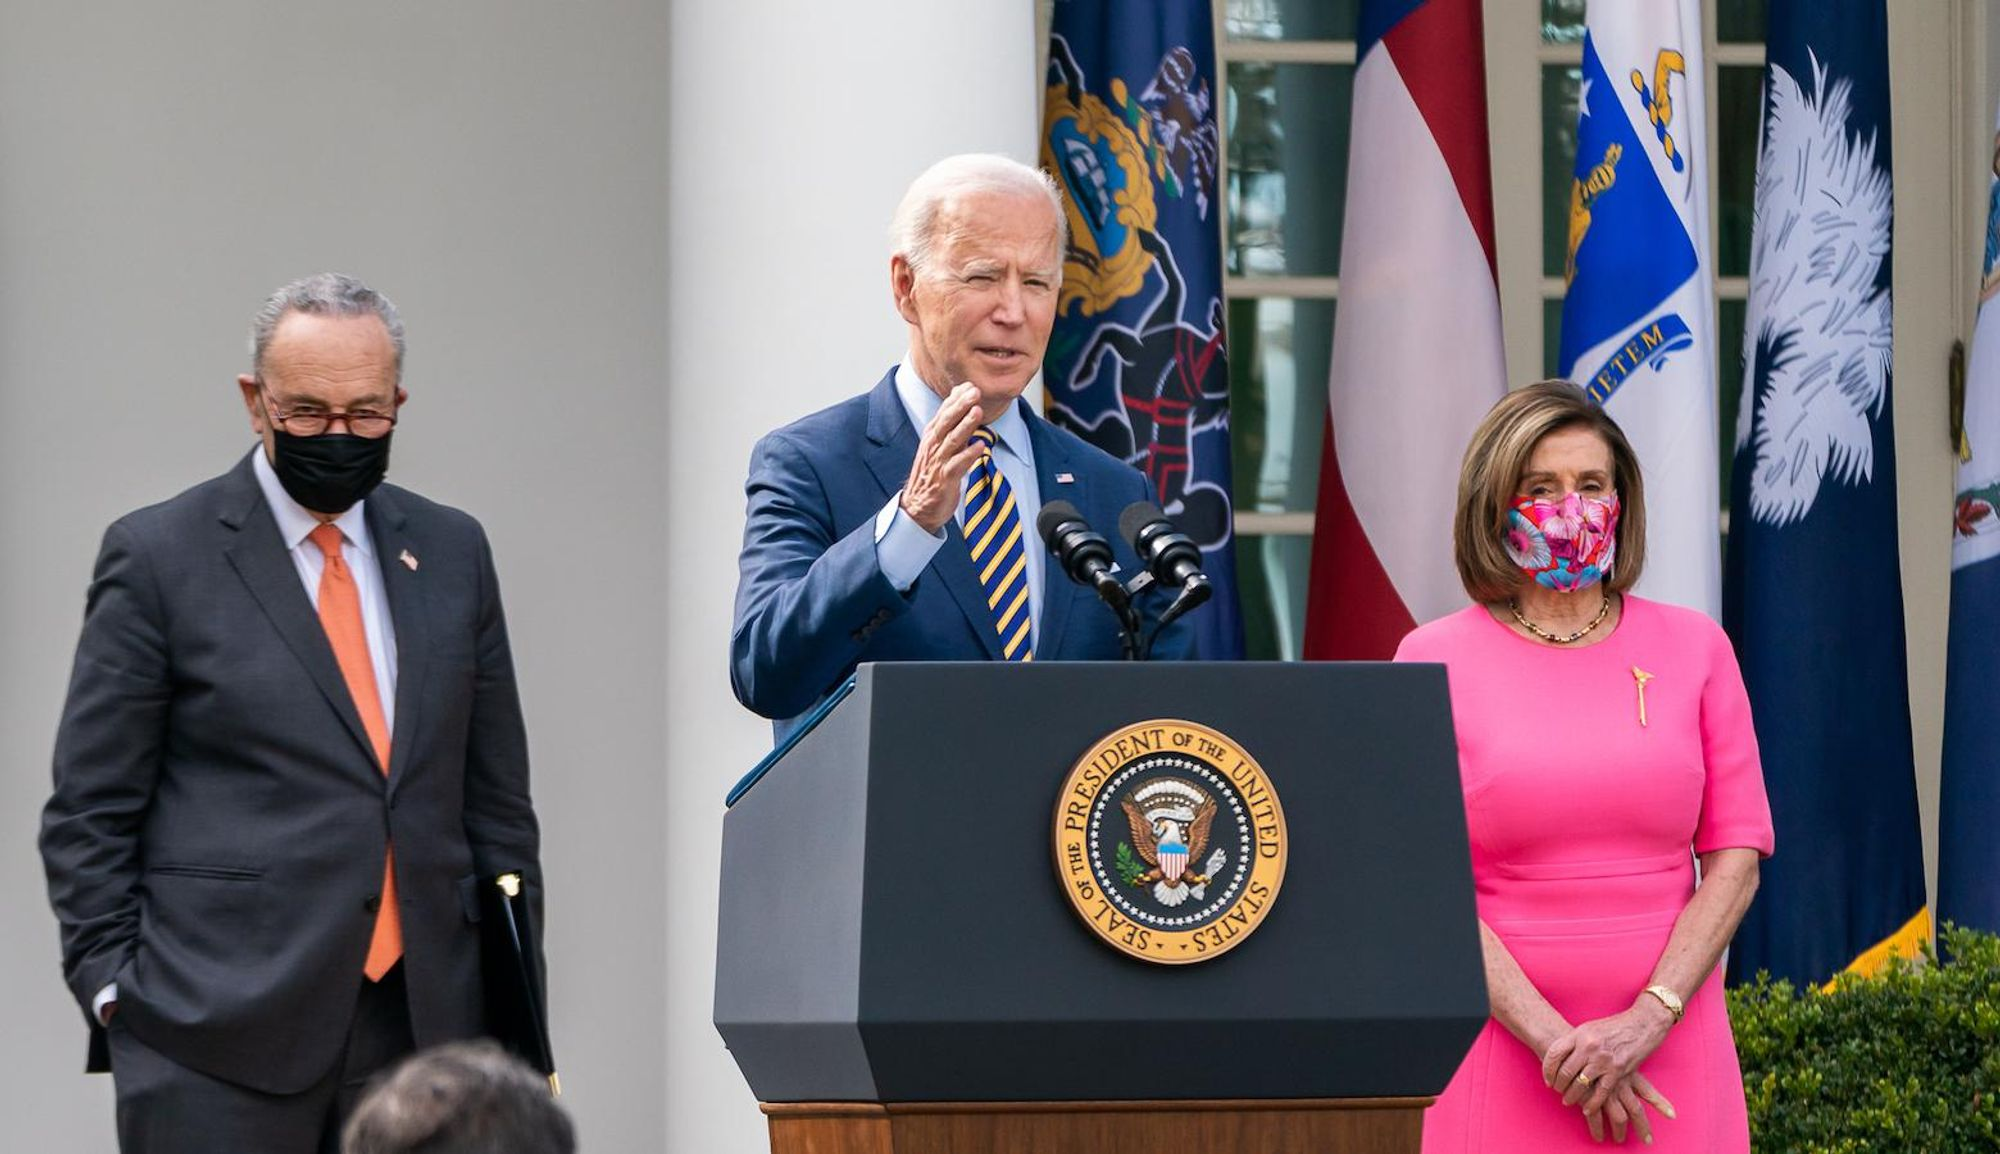 Biden warned against repeating Obama's 'fatal political mistakes' with Republicans